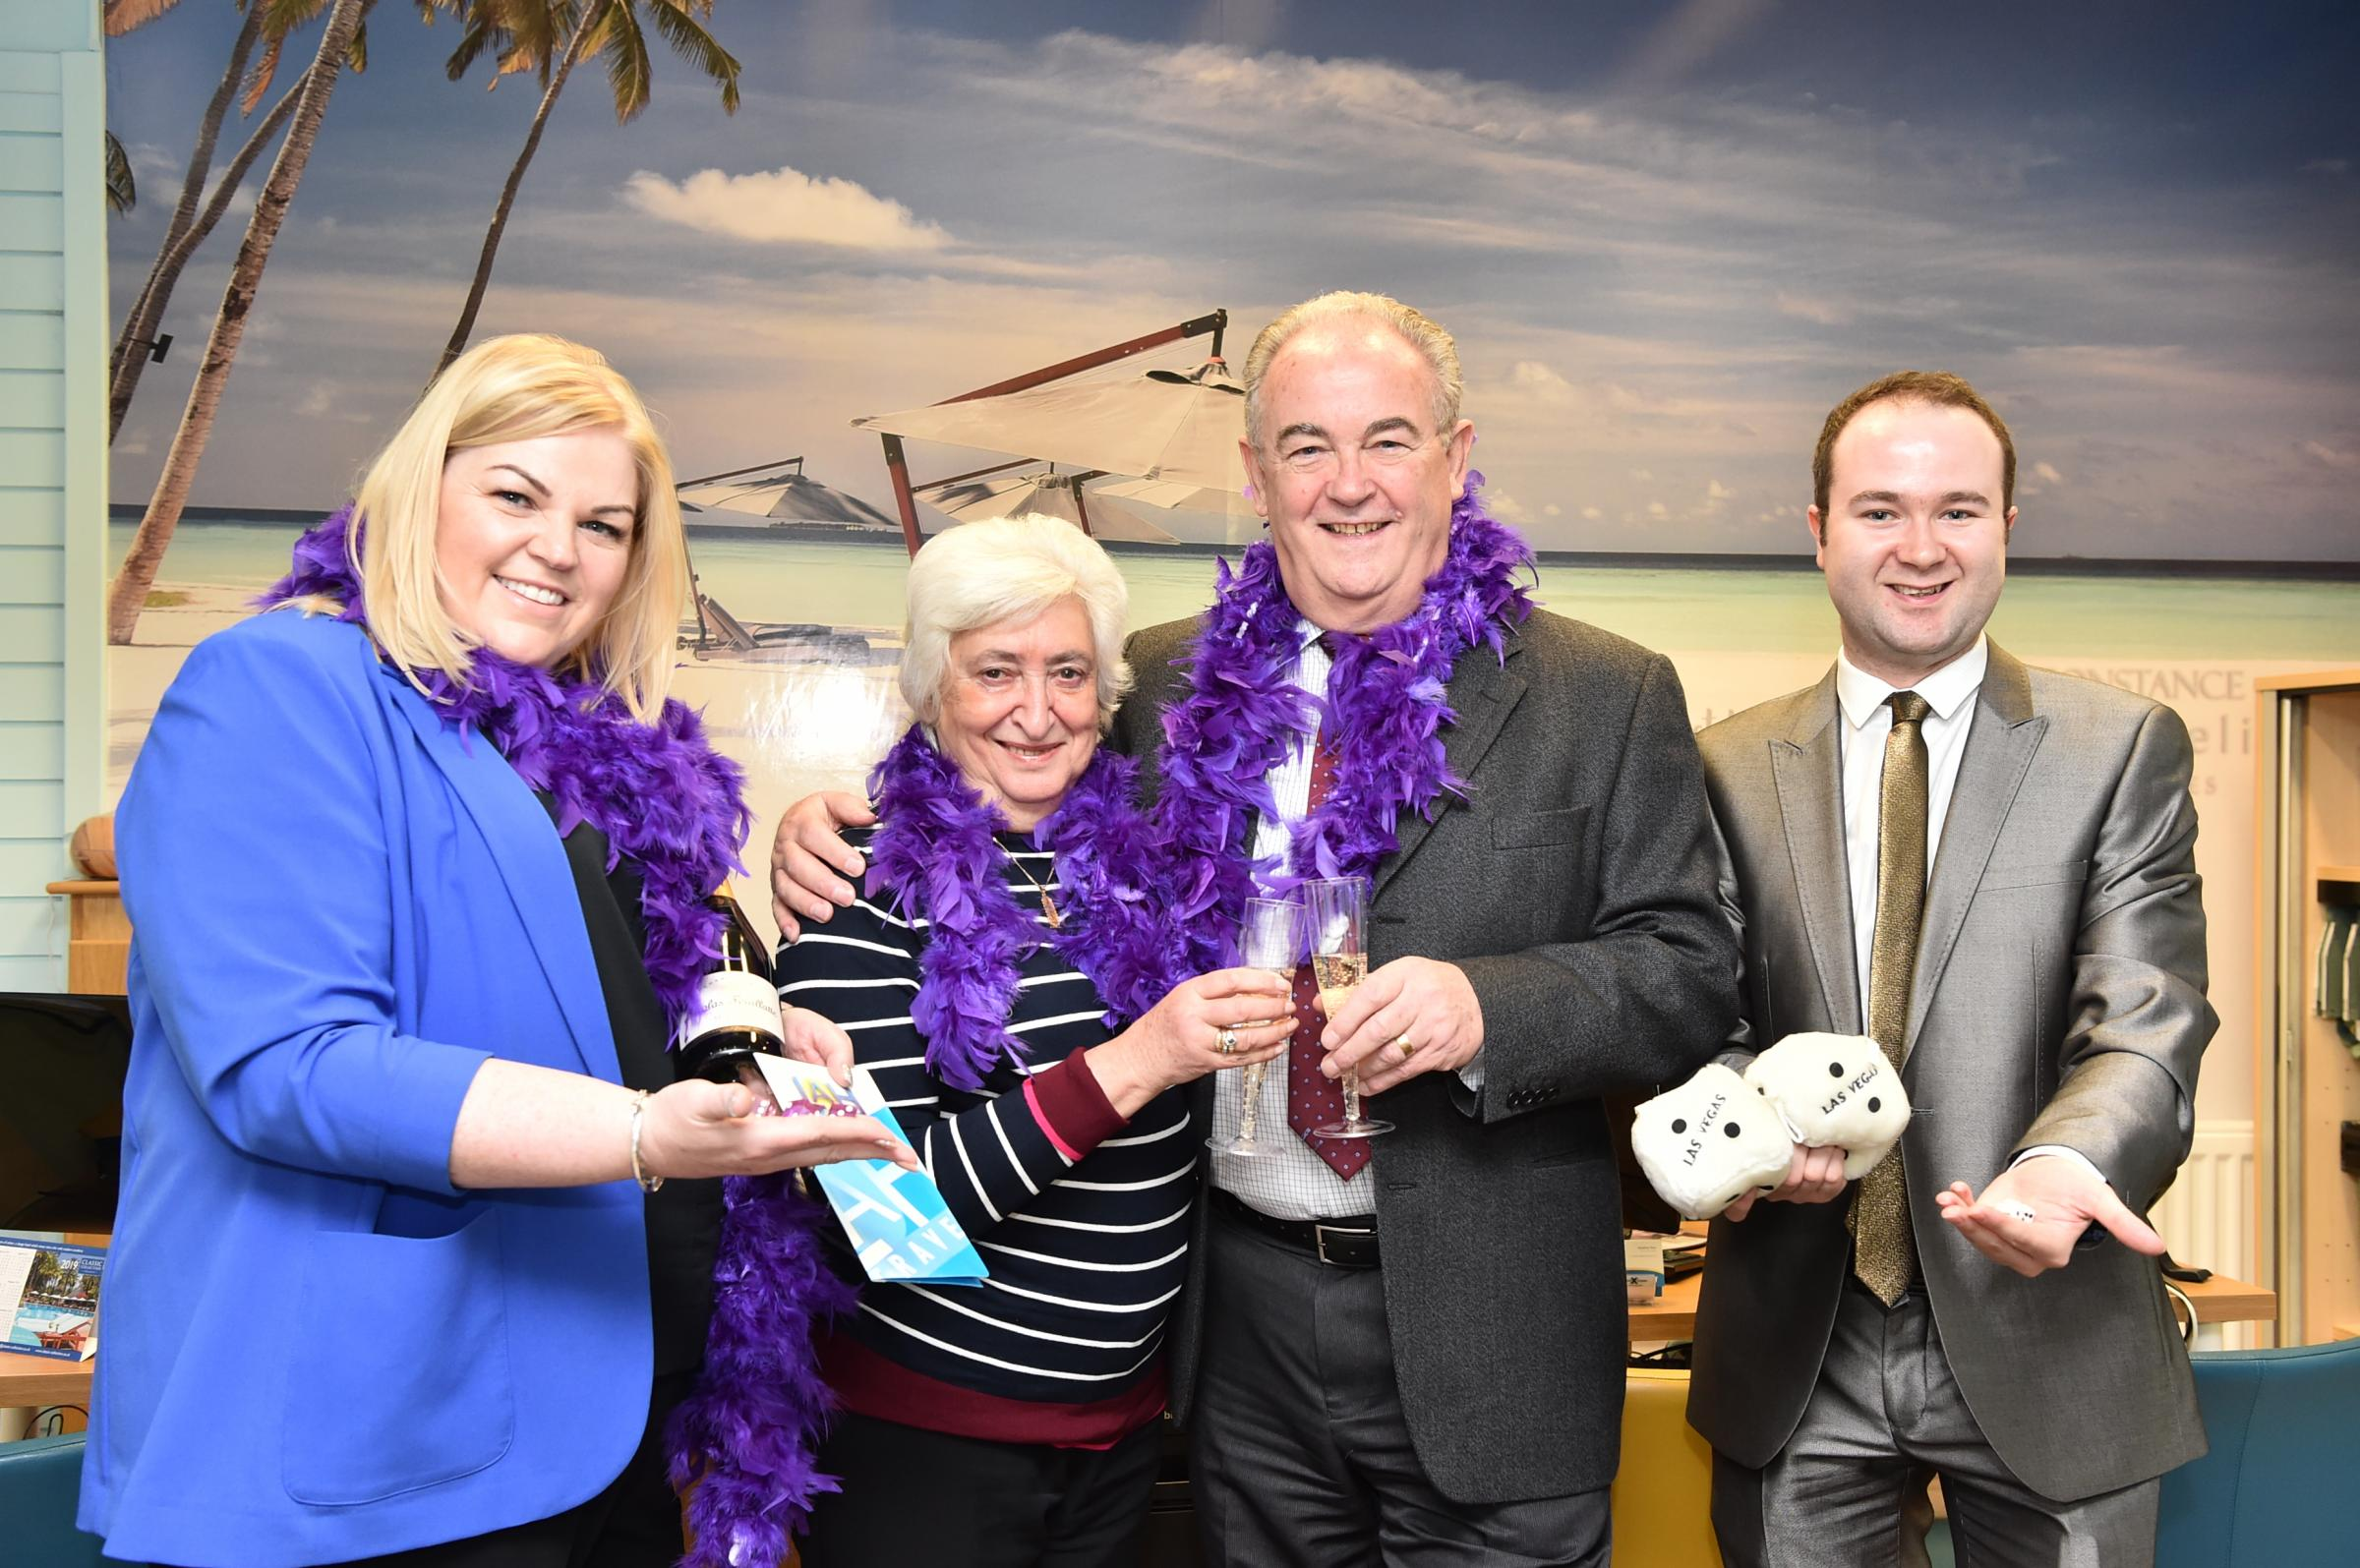 Lucky Ayrshire Hospice raffle winners pick up trip to Vegas